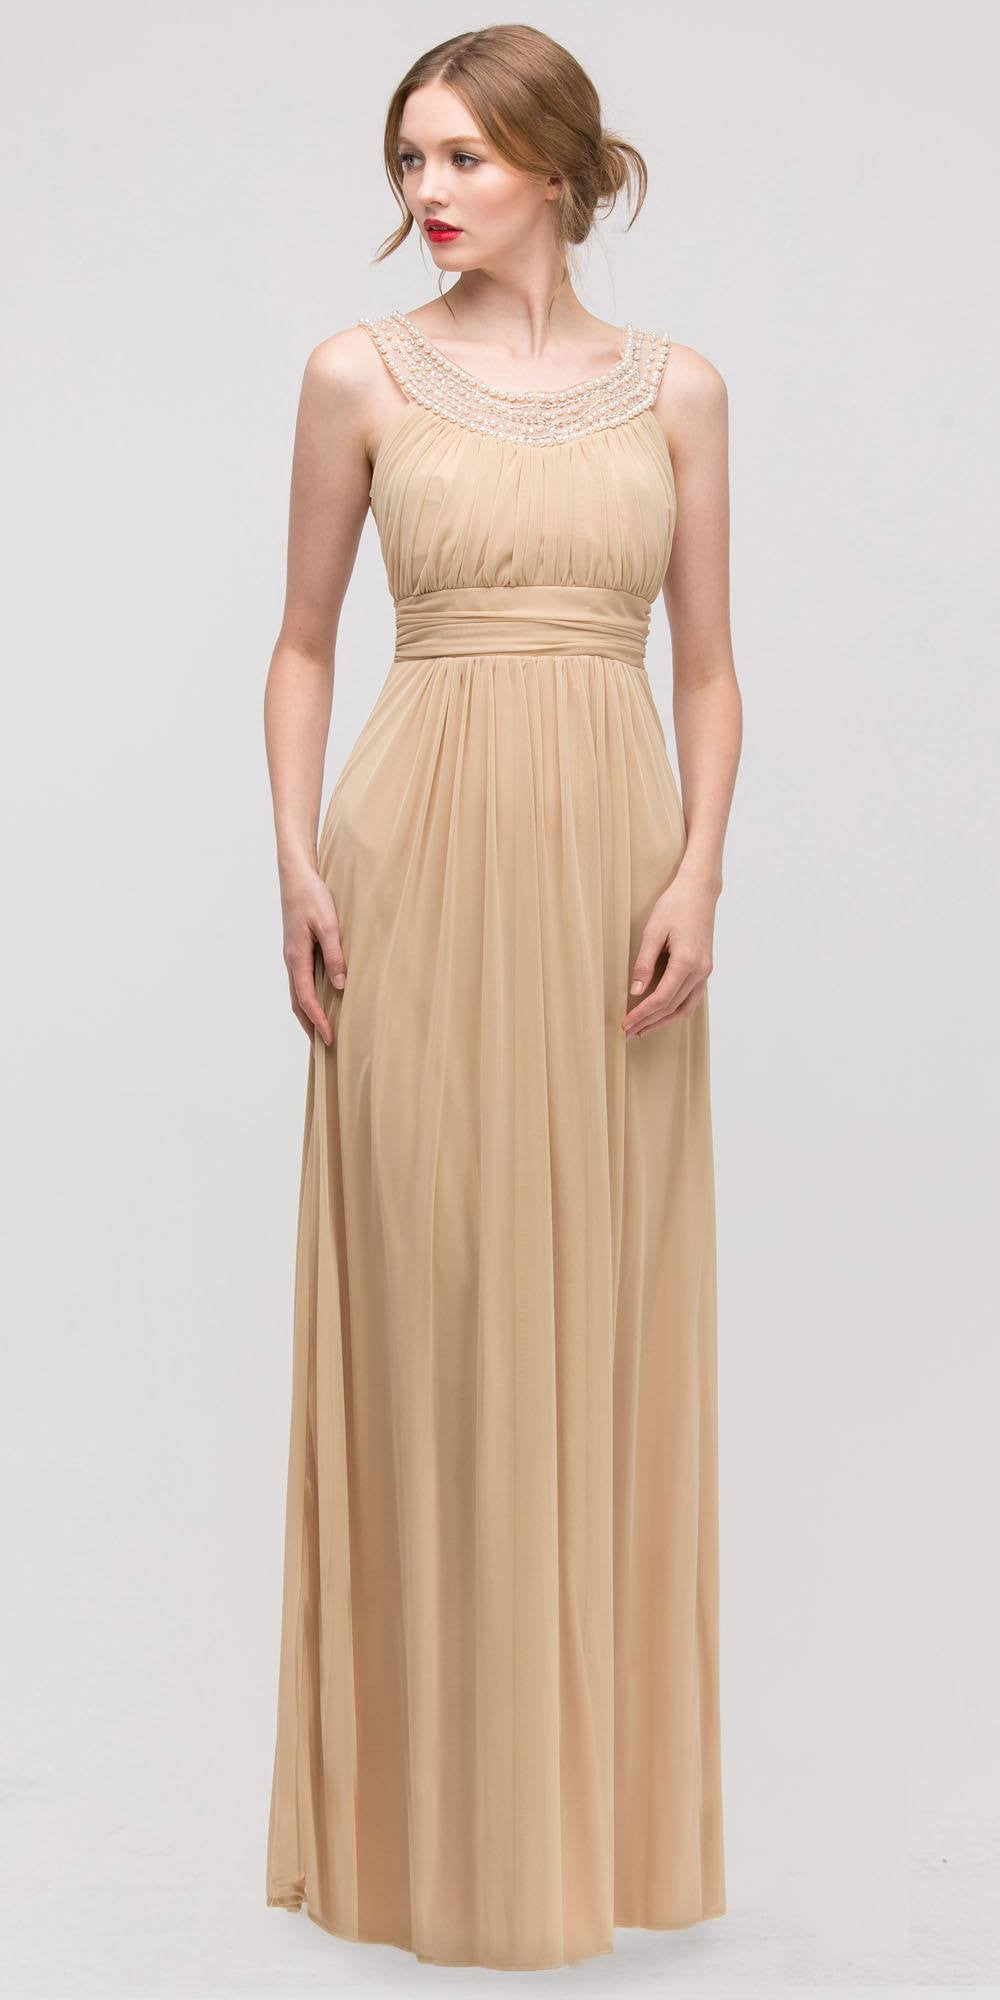 Studded Bateau Neckline Ruched Bodice Gold Evening Dress